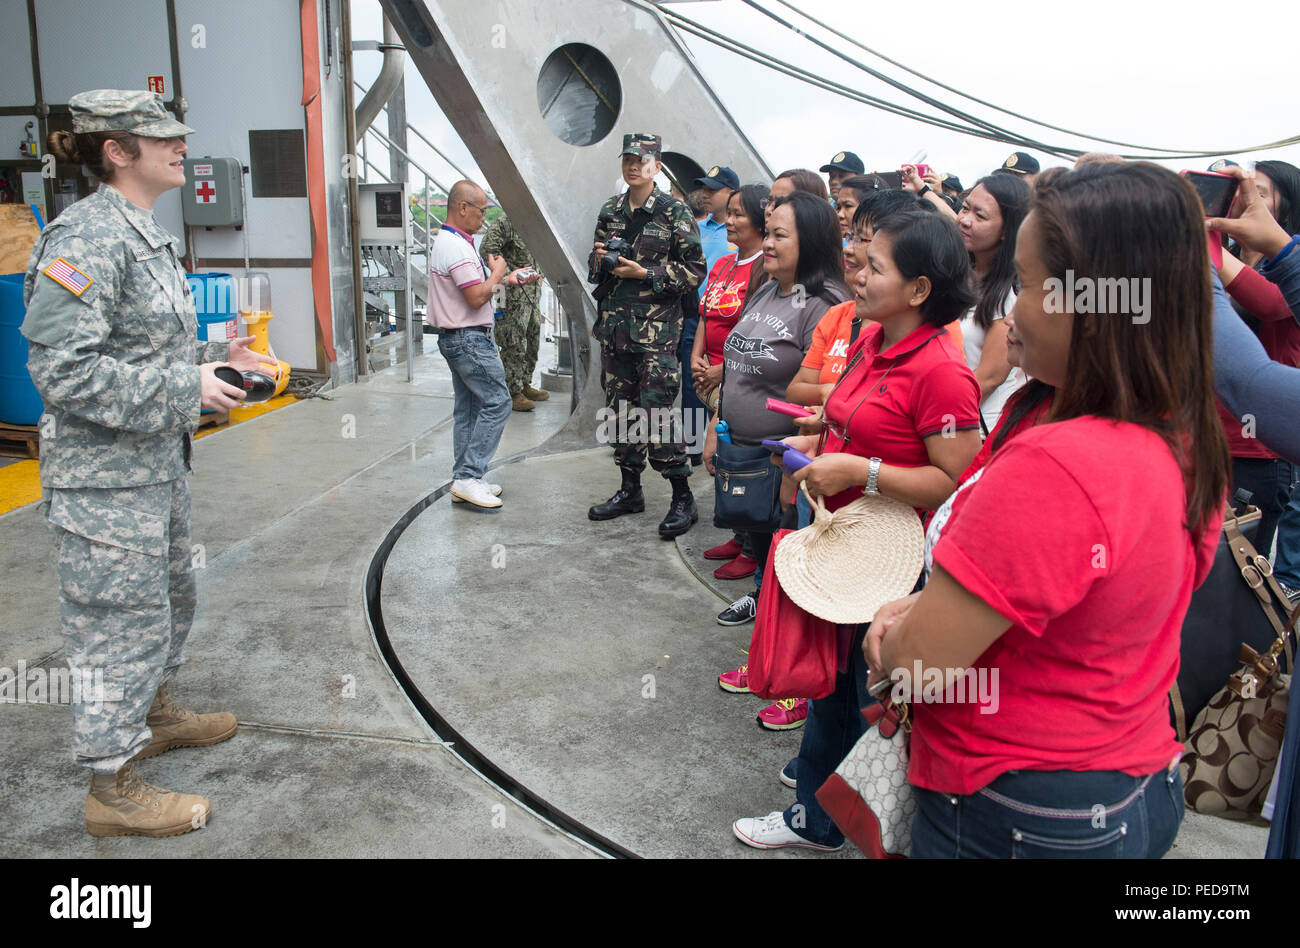 150808-N-MK341-005 SAN FERNANDO CITY, Philippines (August 8, 2015) – Army Capt. Desiree Giangregorio talks to guests during a ship tour of the Military Sealift Command joint high speed vessel USNS Millinocket (JHSV 3) Aug. 8. Millinocket is in the Philippines for the fourth stop of Pacific Partnership 2015. Millinocket and embarked Task Force Forager are serving as the secondary platform for Pacific Partnership, led by an expeditionary command element from the Navy's 30th Naval Construction Regiment (30 NCR) from Port Hueneme, California. Now in its 10th iteration, Pacific Partnership is the l - Stock Image